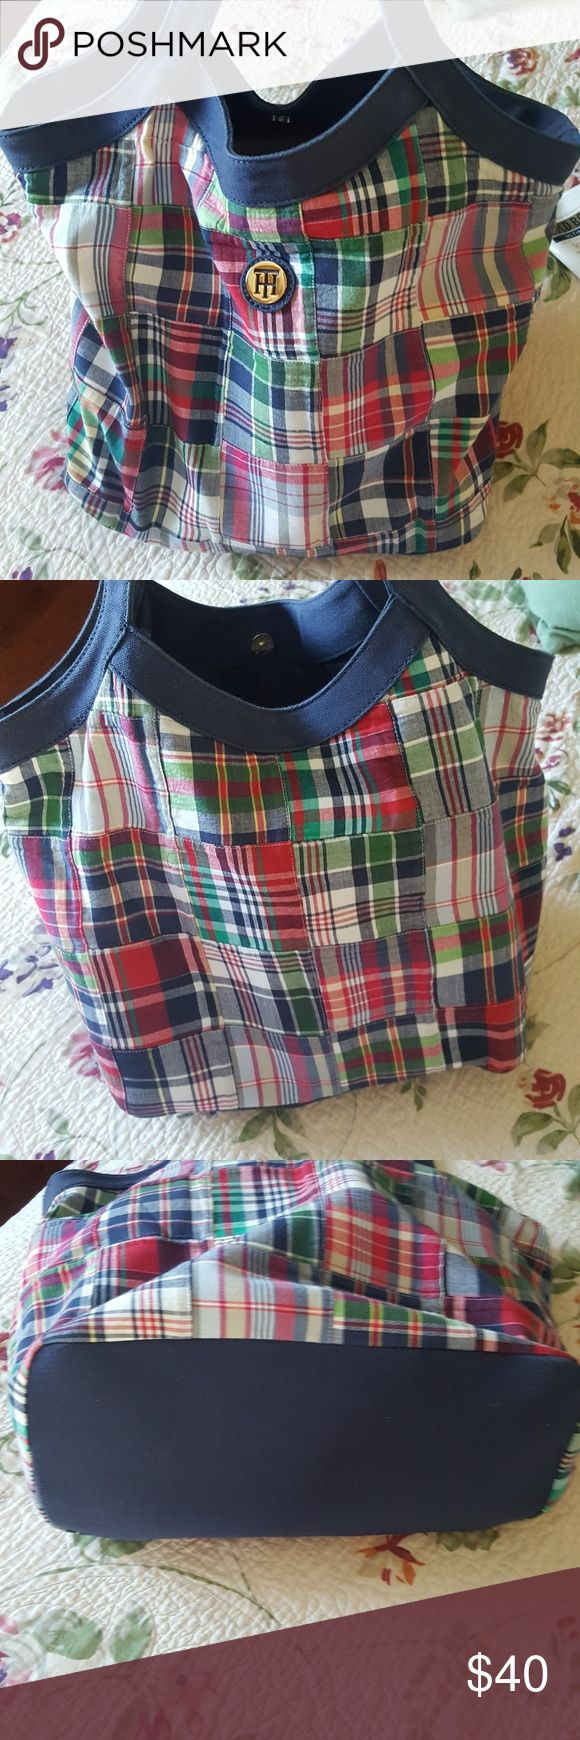 TOMMY HILFIGER bag TOMMY HILFIGER BAG, very  roomy,  cute plaid pattern. PERFECT NEW condition.  Wear over shoulder or in crook of arm.  Perfect for spring/summer.  Looks adorable with jeans. FAST SHIPPER 5??RATED Tommy Hilfiger Bags Totes